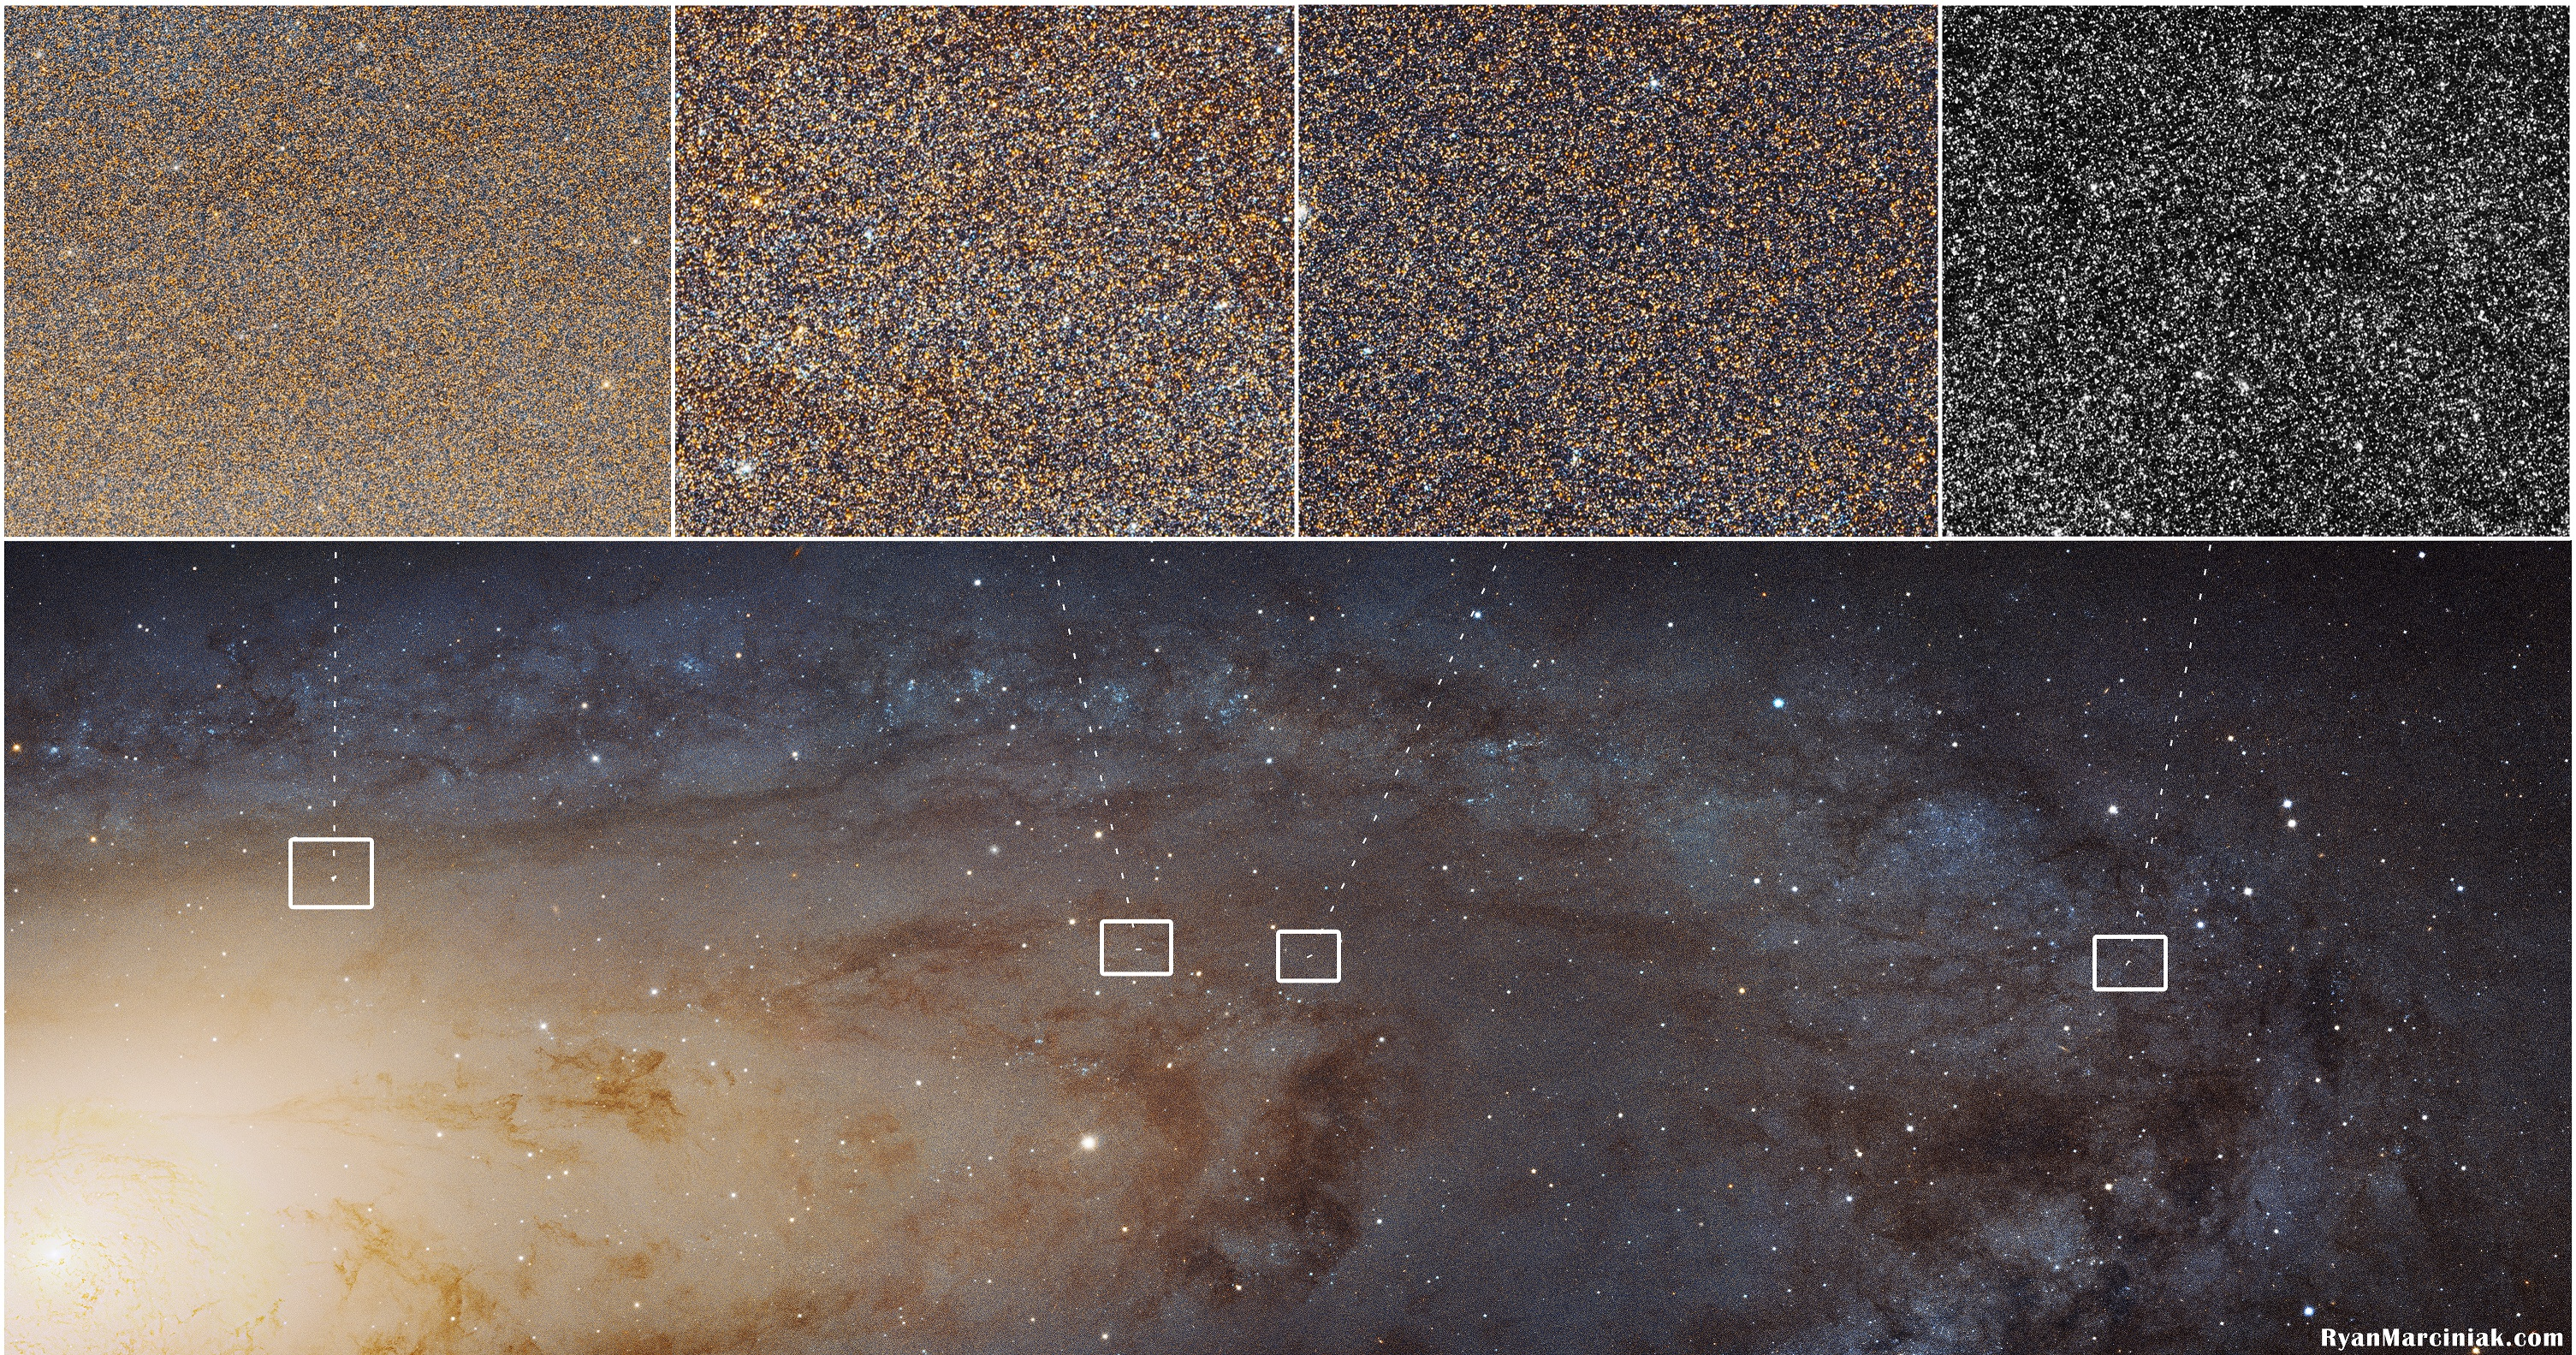 4 3 Gigabytes and 100 Million Stars in a Single image